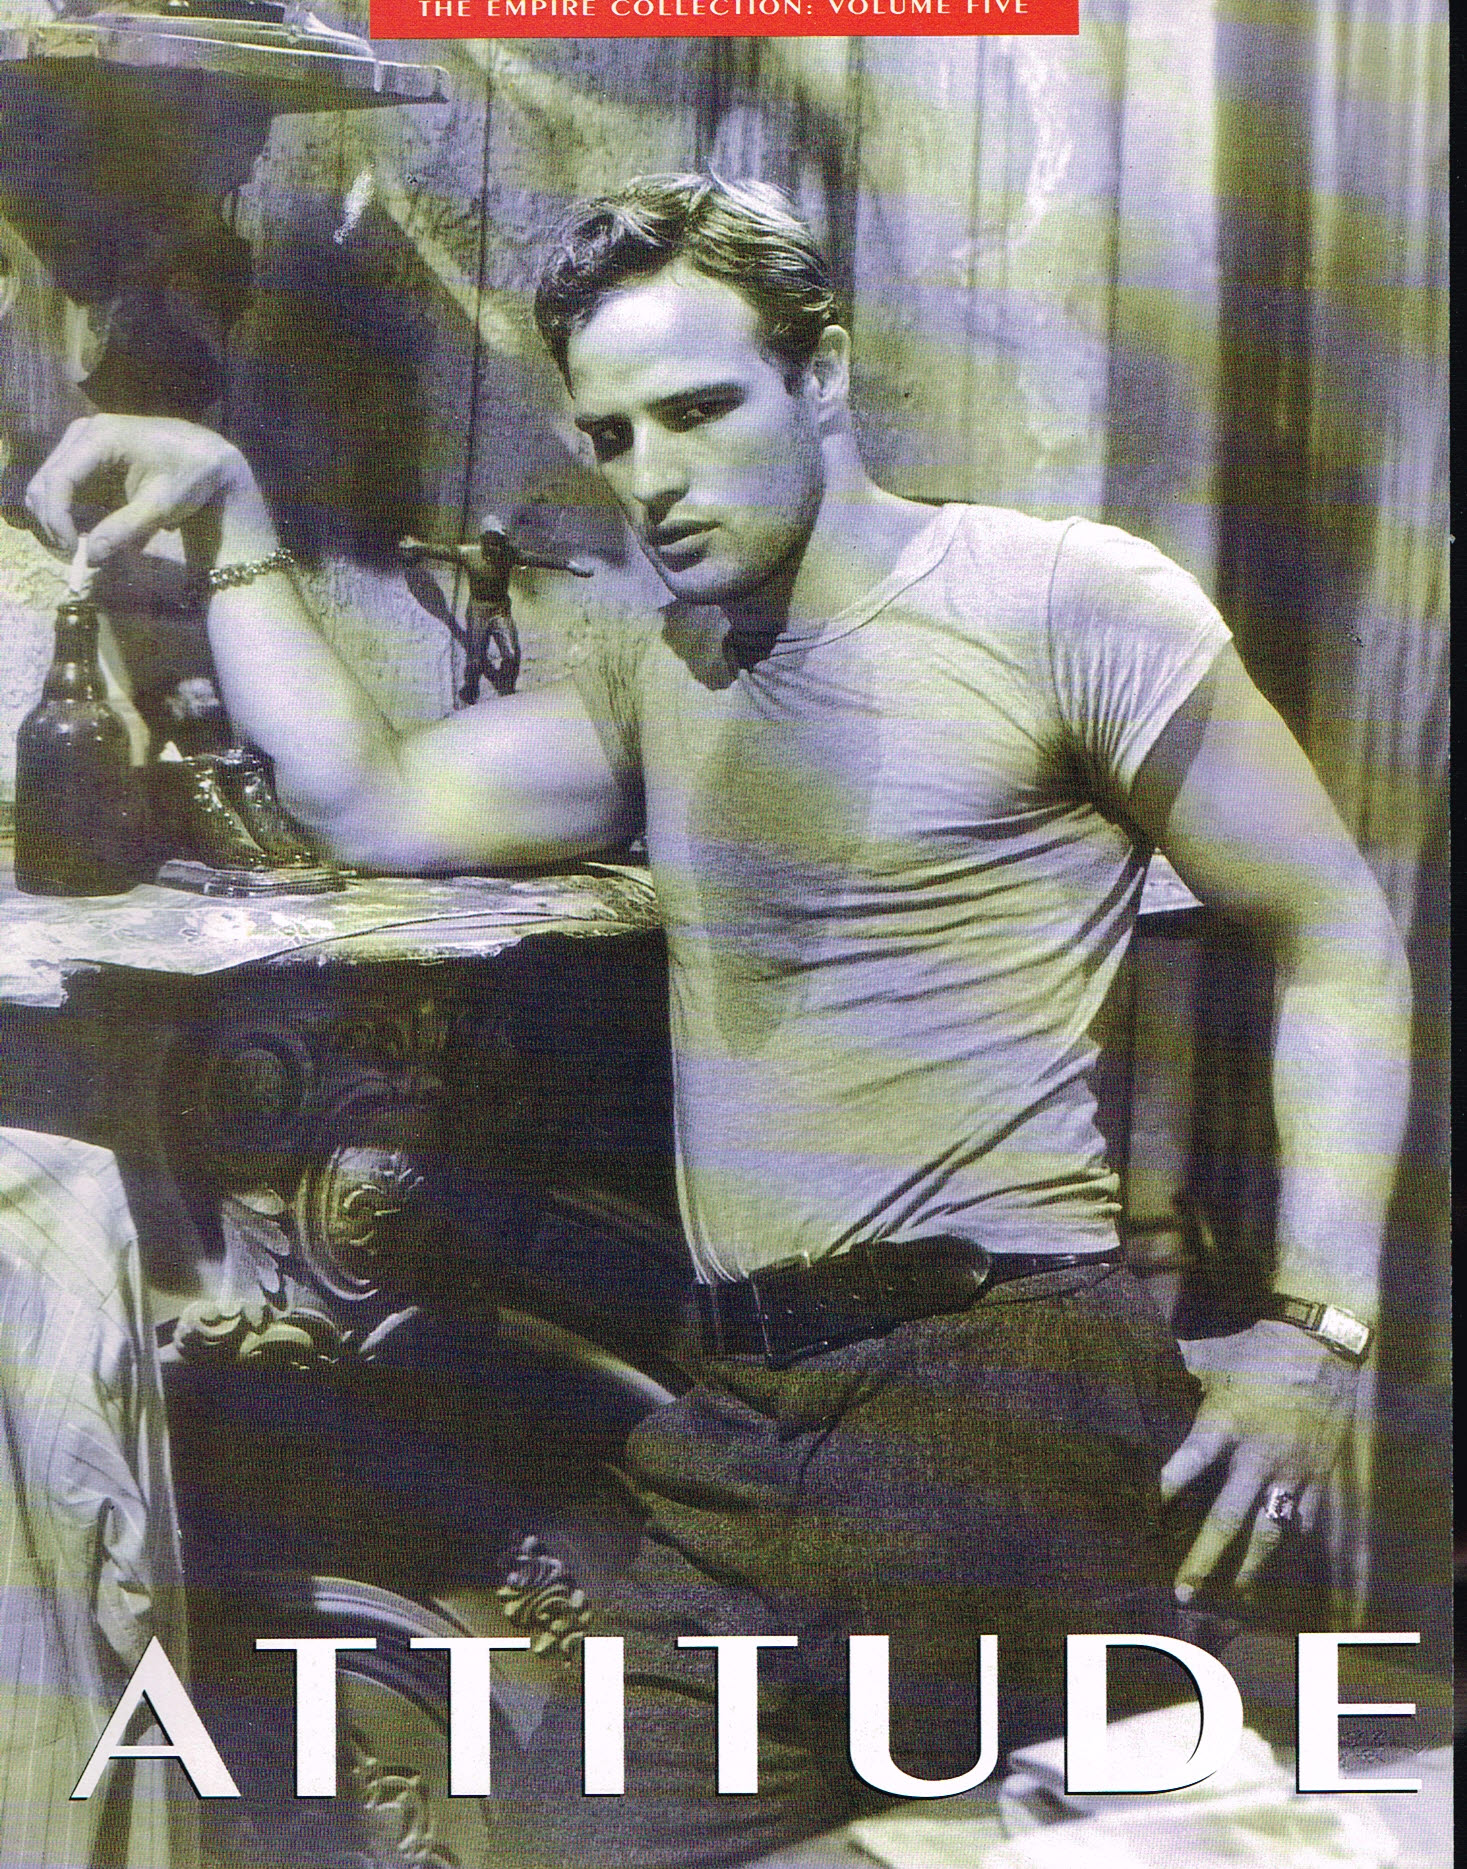 ATTITUDE Empire Collection vol.5 Marlon Brando centre fold ref101531 S4 Supplement Containing Photos and Posters Ideal for framing. Measures approx 24cm x 32cm - 24 pages. Please read the full description and see photo.